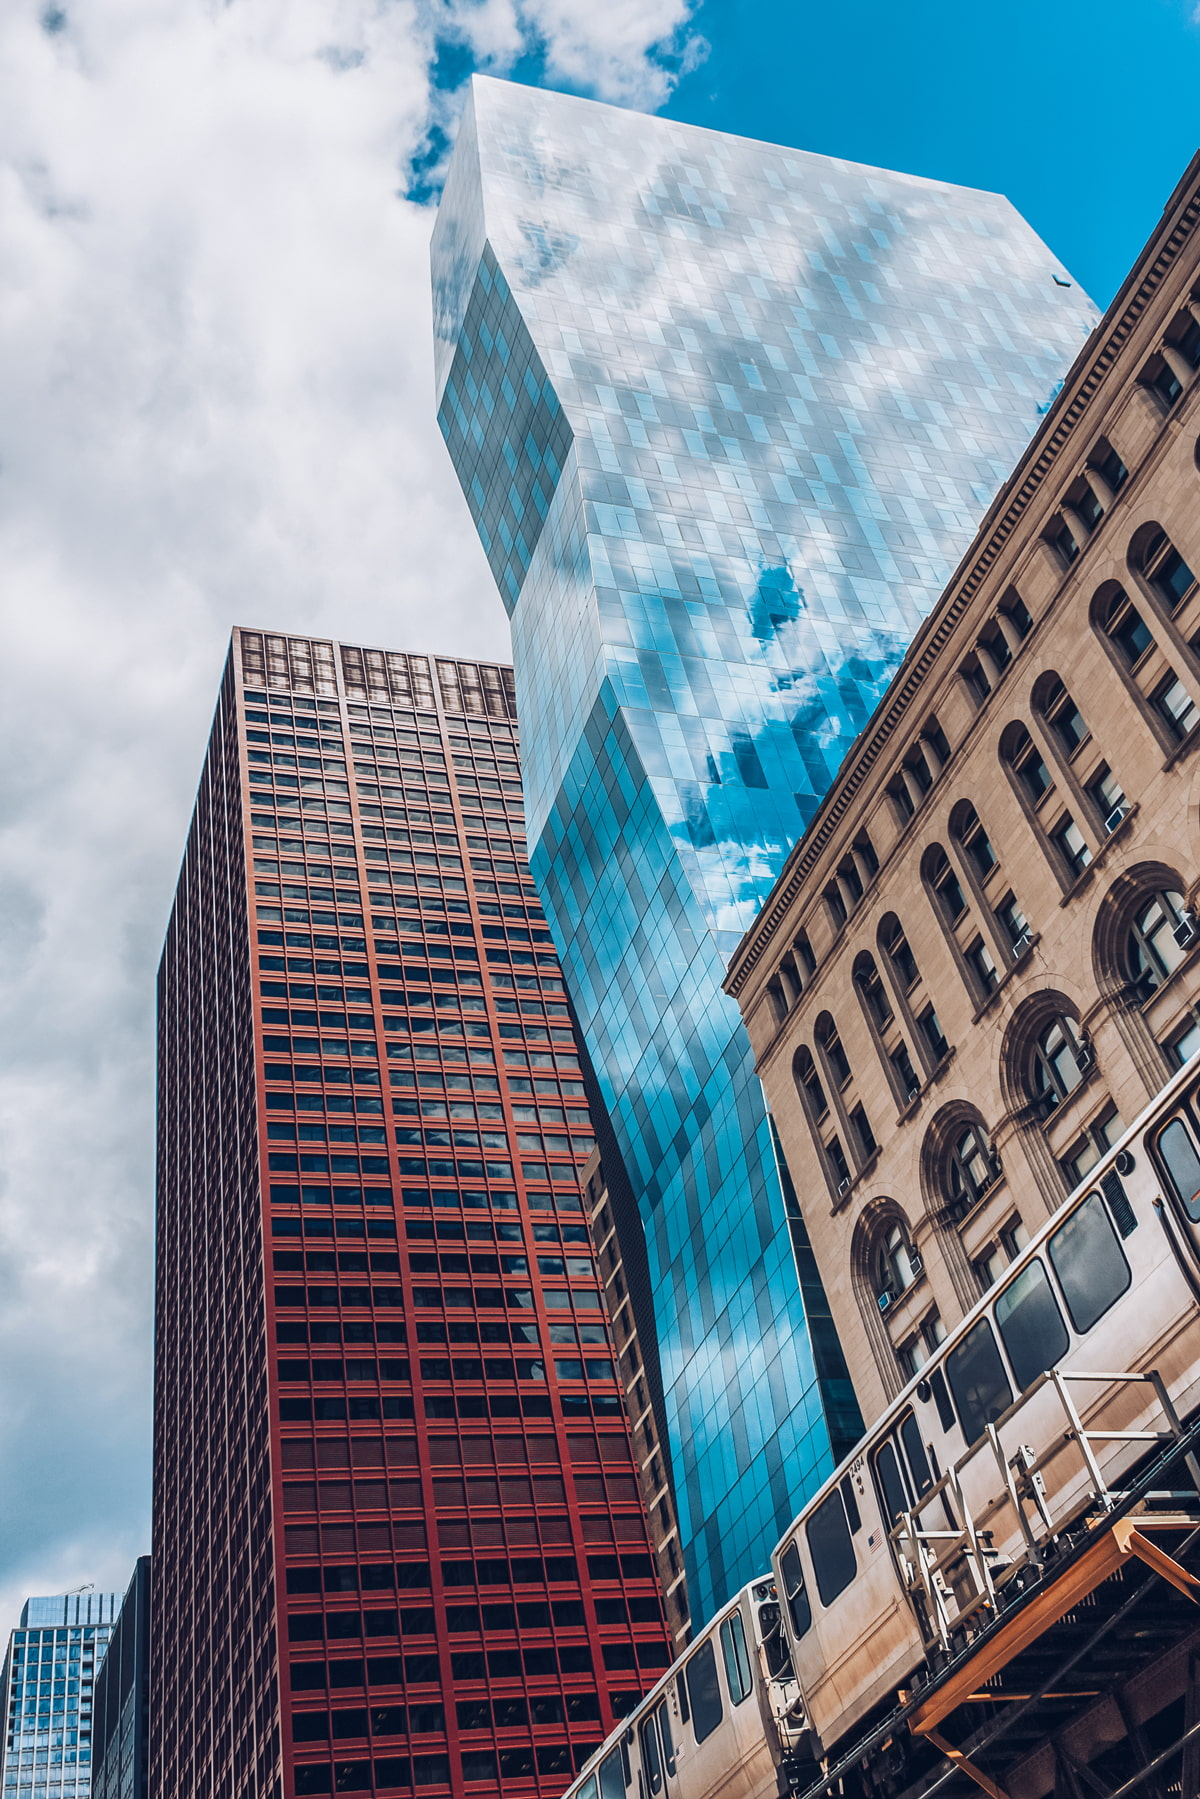 Tall buildings on S Wabash Ave, Chicago